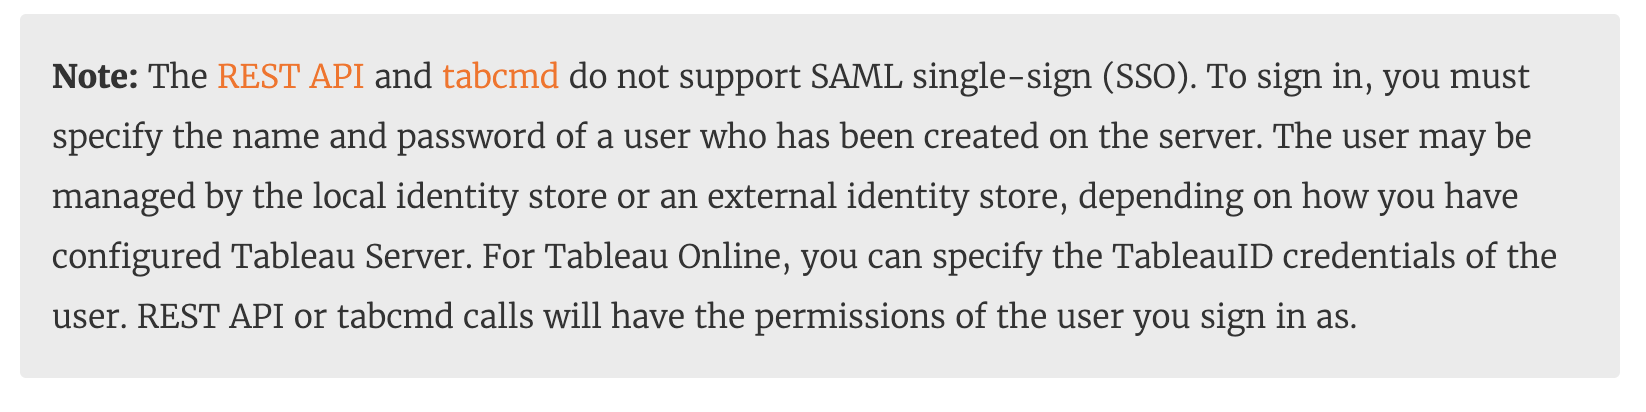 Tableau disclaimer about REST APIs and SAML